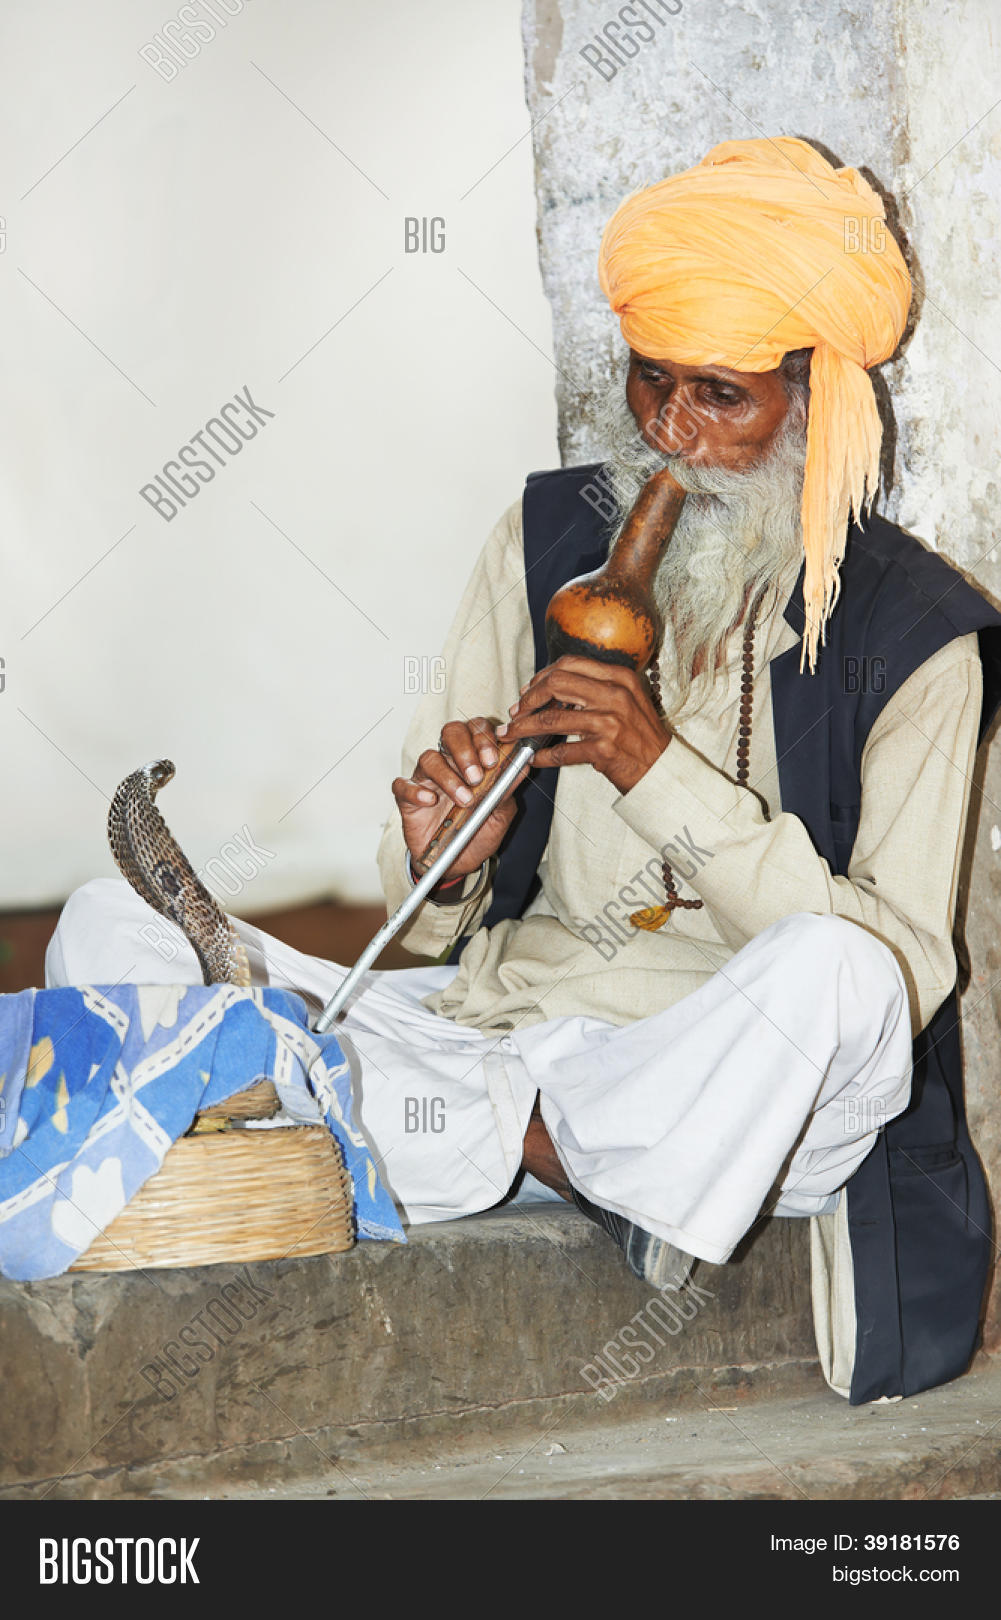 Indian Snake Charmer Image & Photo (Free Trial) | Bigstock